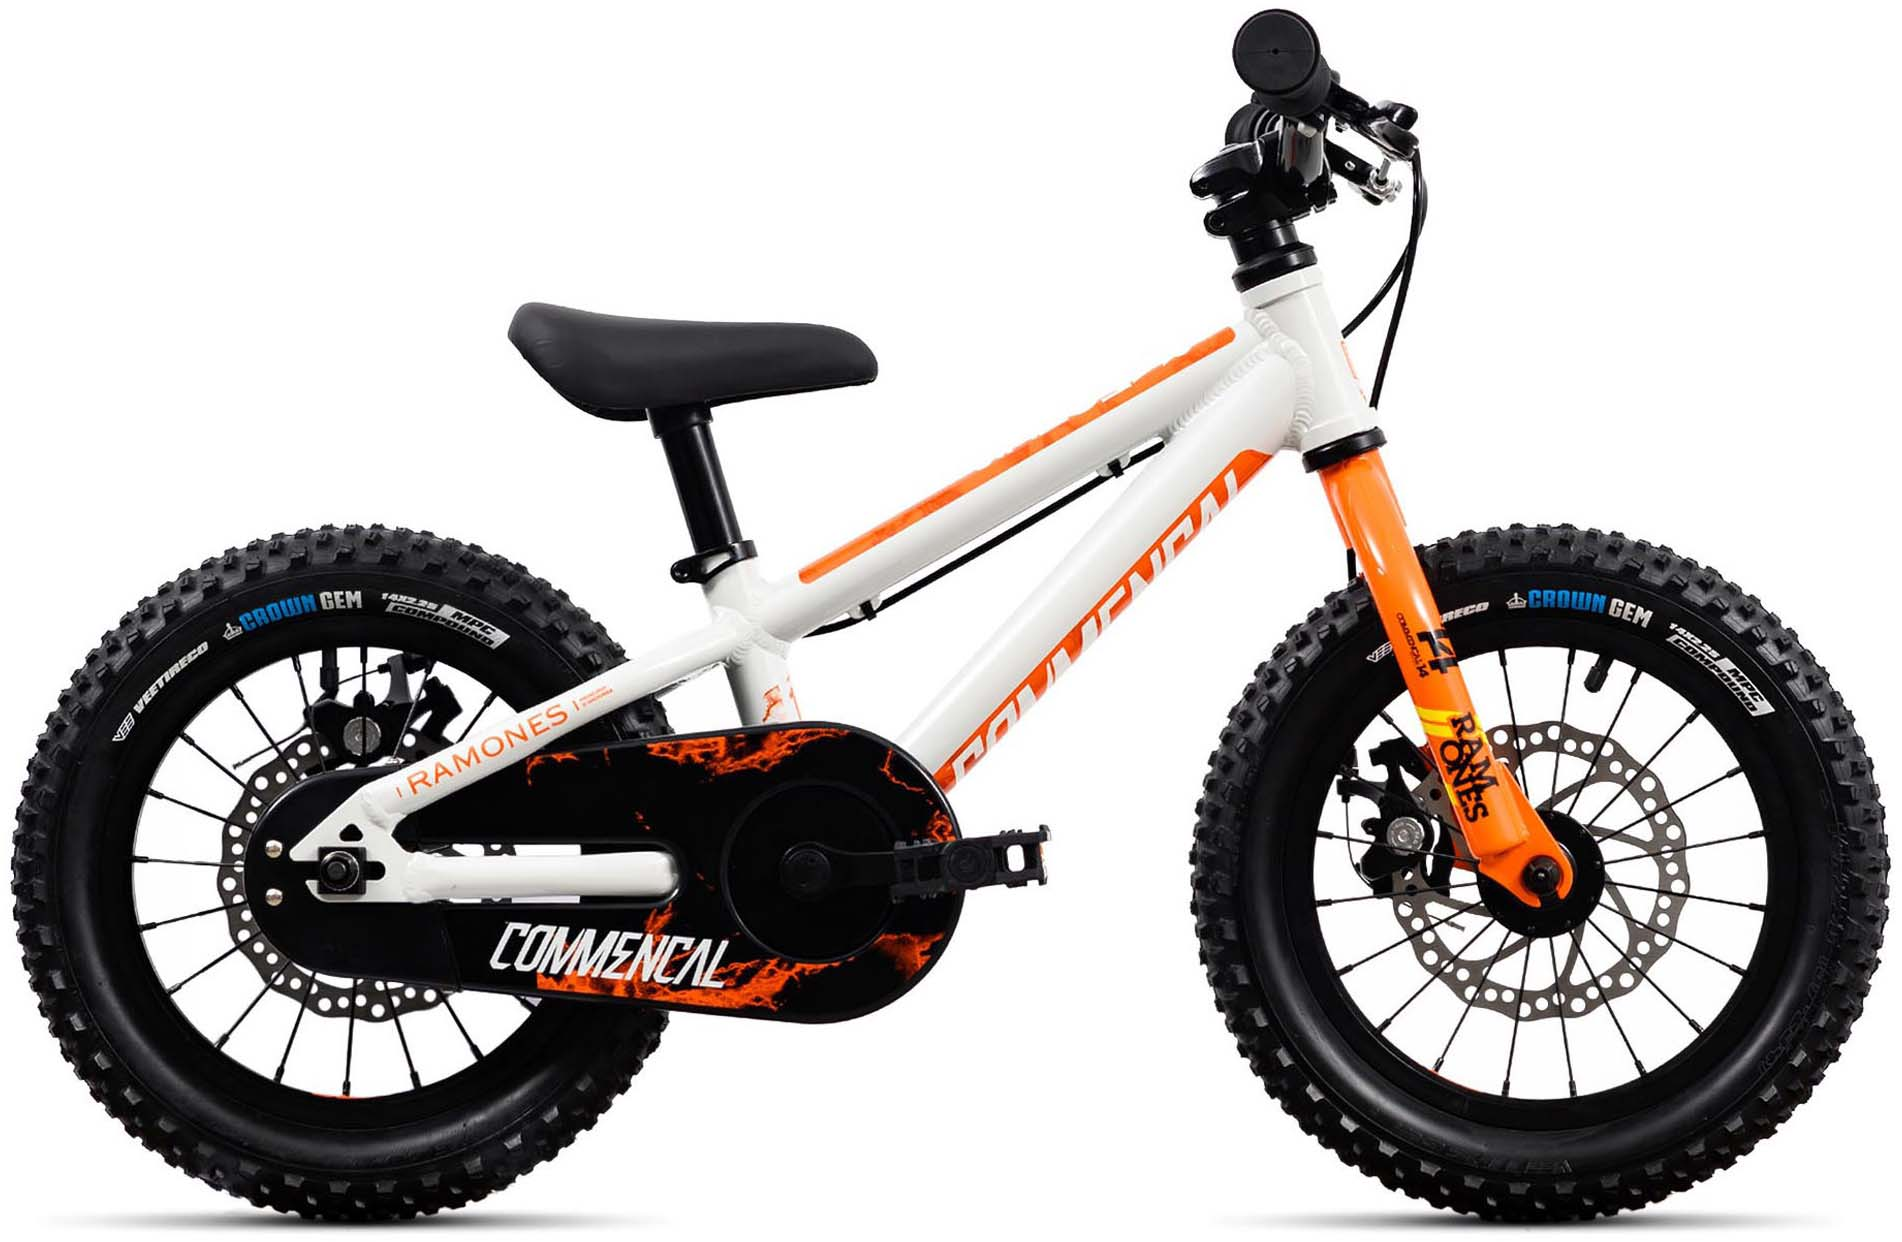 Commencal Ramones 14 Kids Bike (2020) | City-cykler